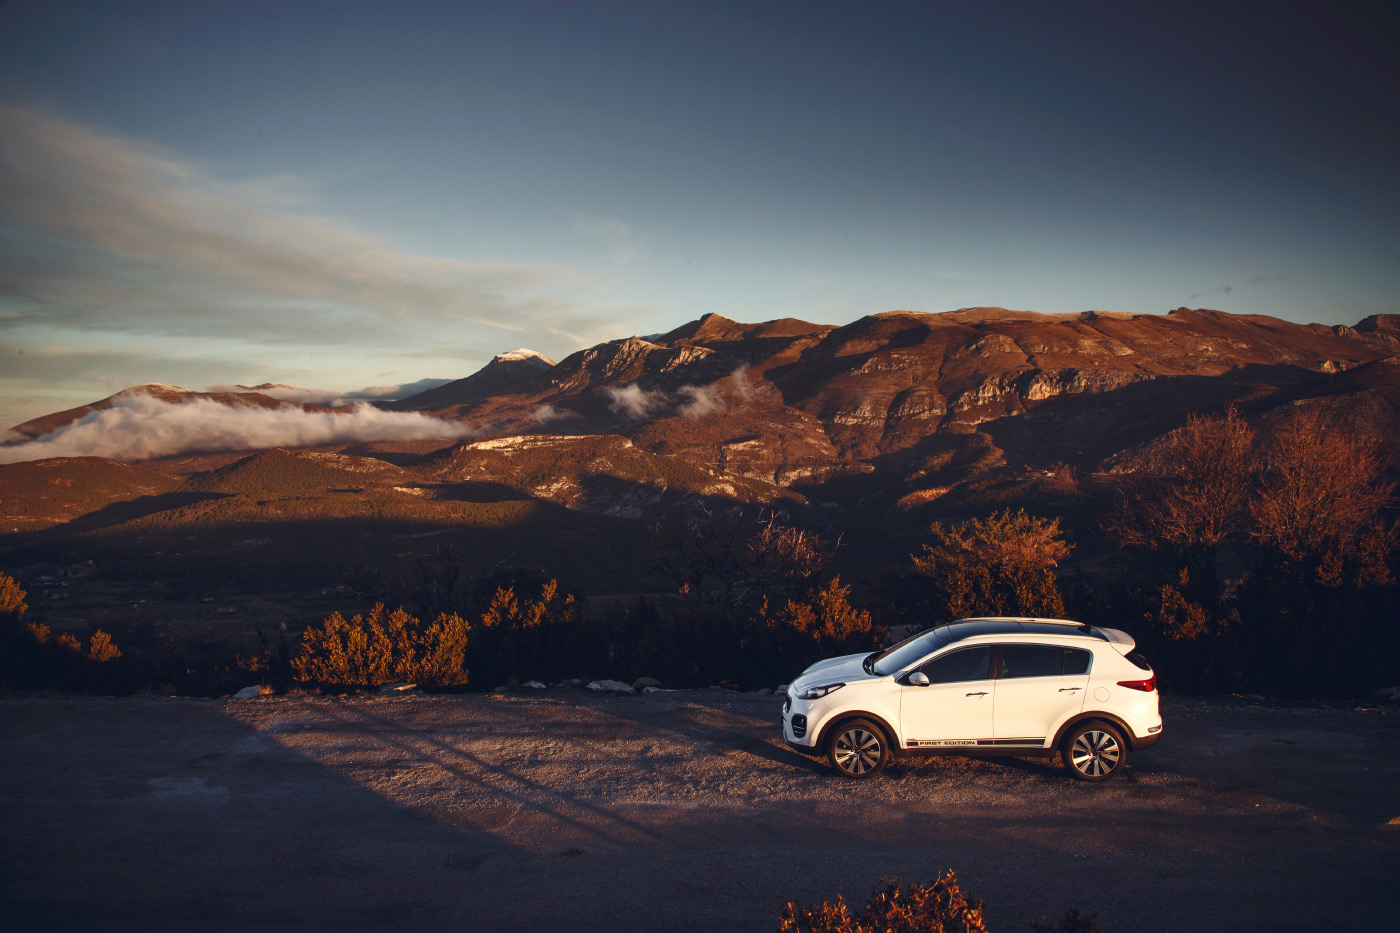 <p>The 2016 Kia Sportage First Edition photographed in the South of France.</p>